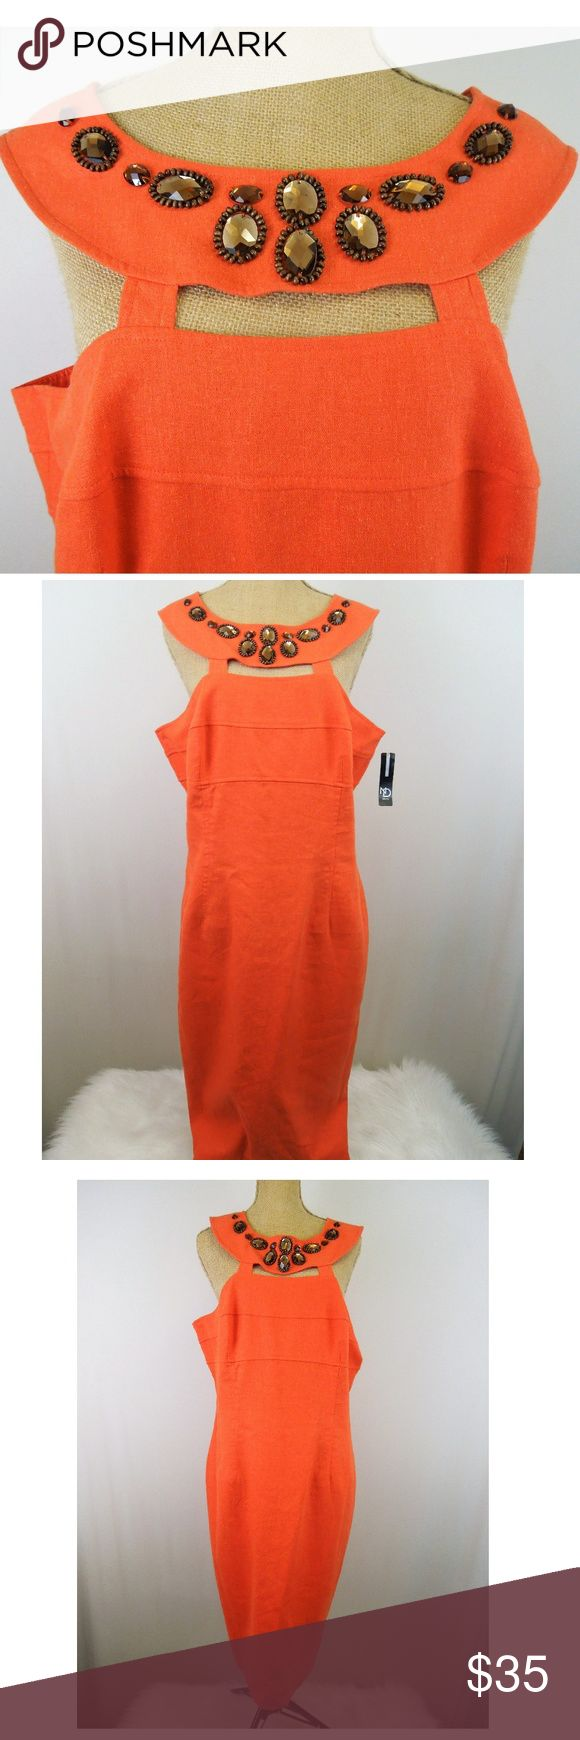 Women Sz 16 Sleeveless Dress by NEW DIRECTIONS Brand: ND, New Directions Tag Size: Women 16 Color: Tangerine Orange Material: Linen and Rayon Style:1M4125 Retail: $100.00 Measurements are taken straight across and flat:  Length: 33 Hem: 21 Underarm to Underarm: 19 Waist: 18.5 (19.5 max stretch) Hip: 22.5 Fully lined Concealed back zip Back seam split Empire waist Banded bodice Cut out neckline Beautiful wood beading and sparkly amber stones, which are sewn into fabric This is SUCH a…